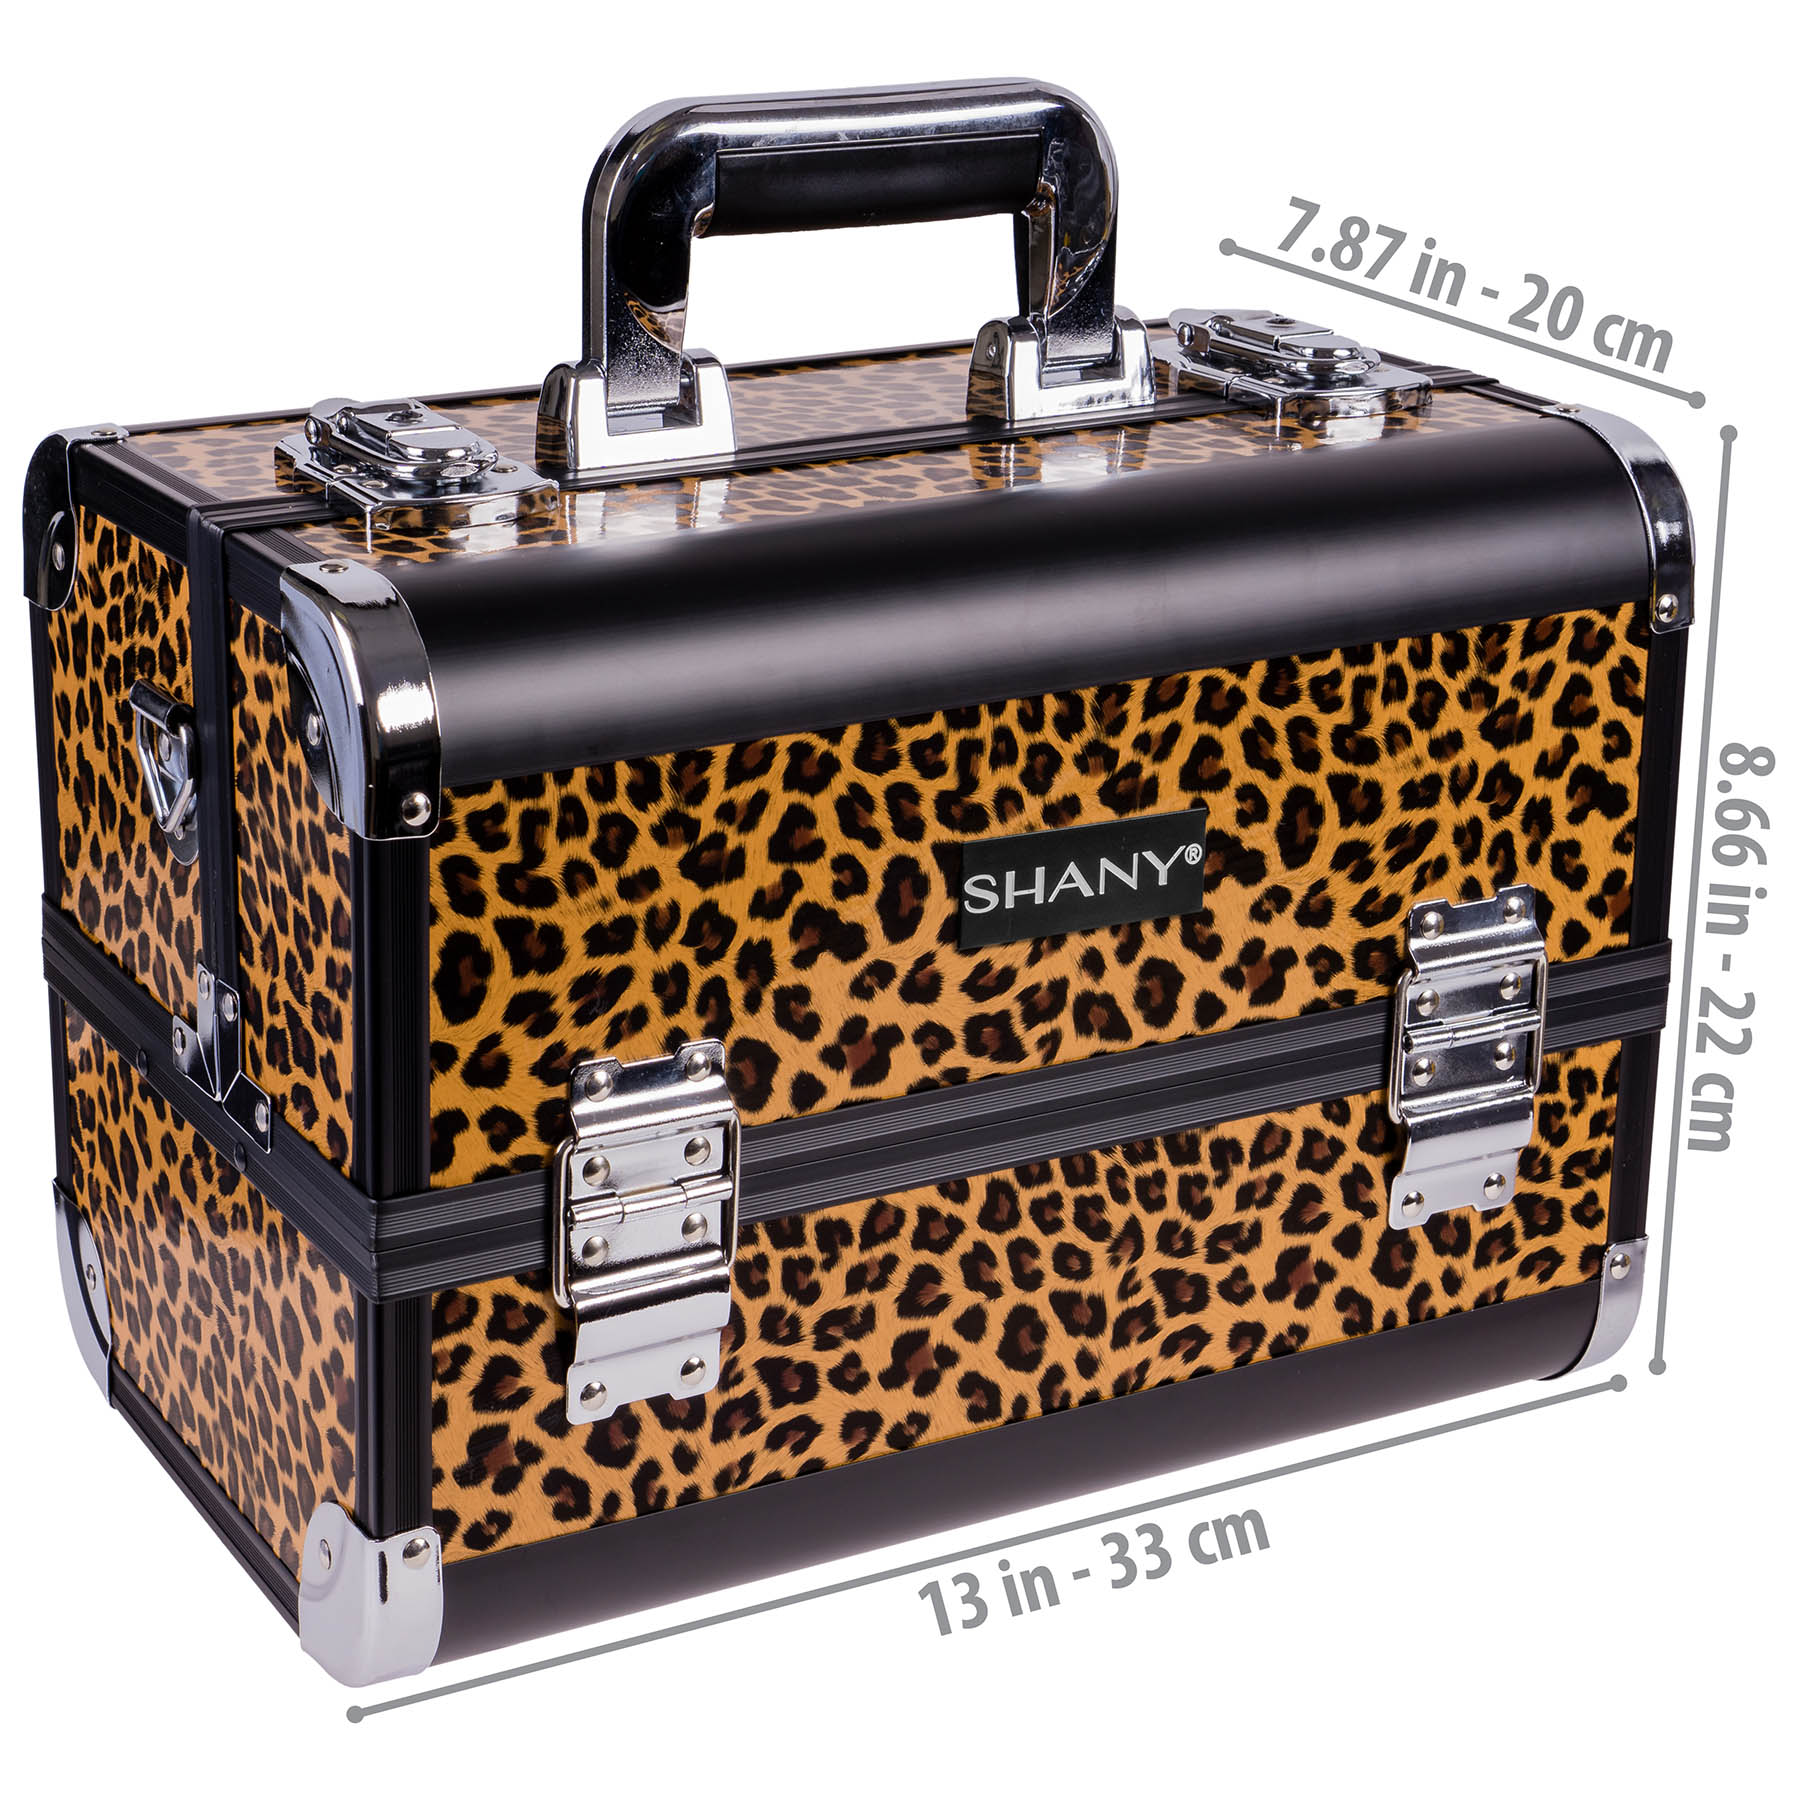 SHANY-Fantasy-Collection-Makeup-Artists-Cosmetics-Train-Case miniature 23